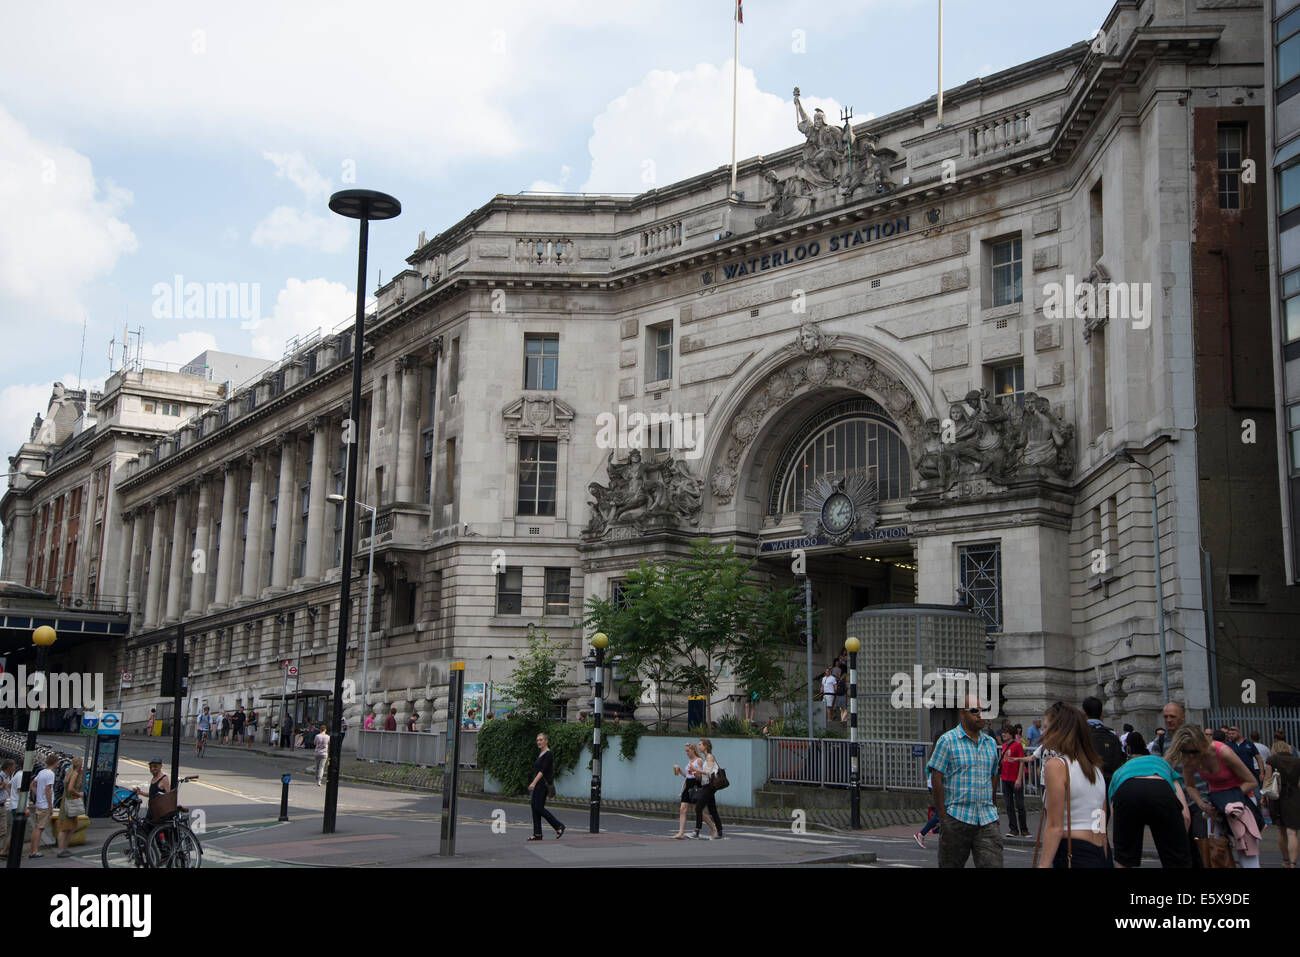 Main entrance and facade of Waterloo Station, London, England - Stock Image